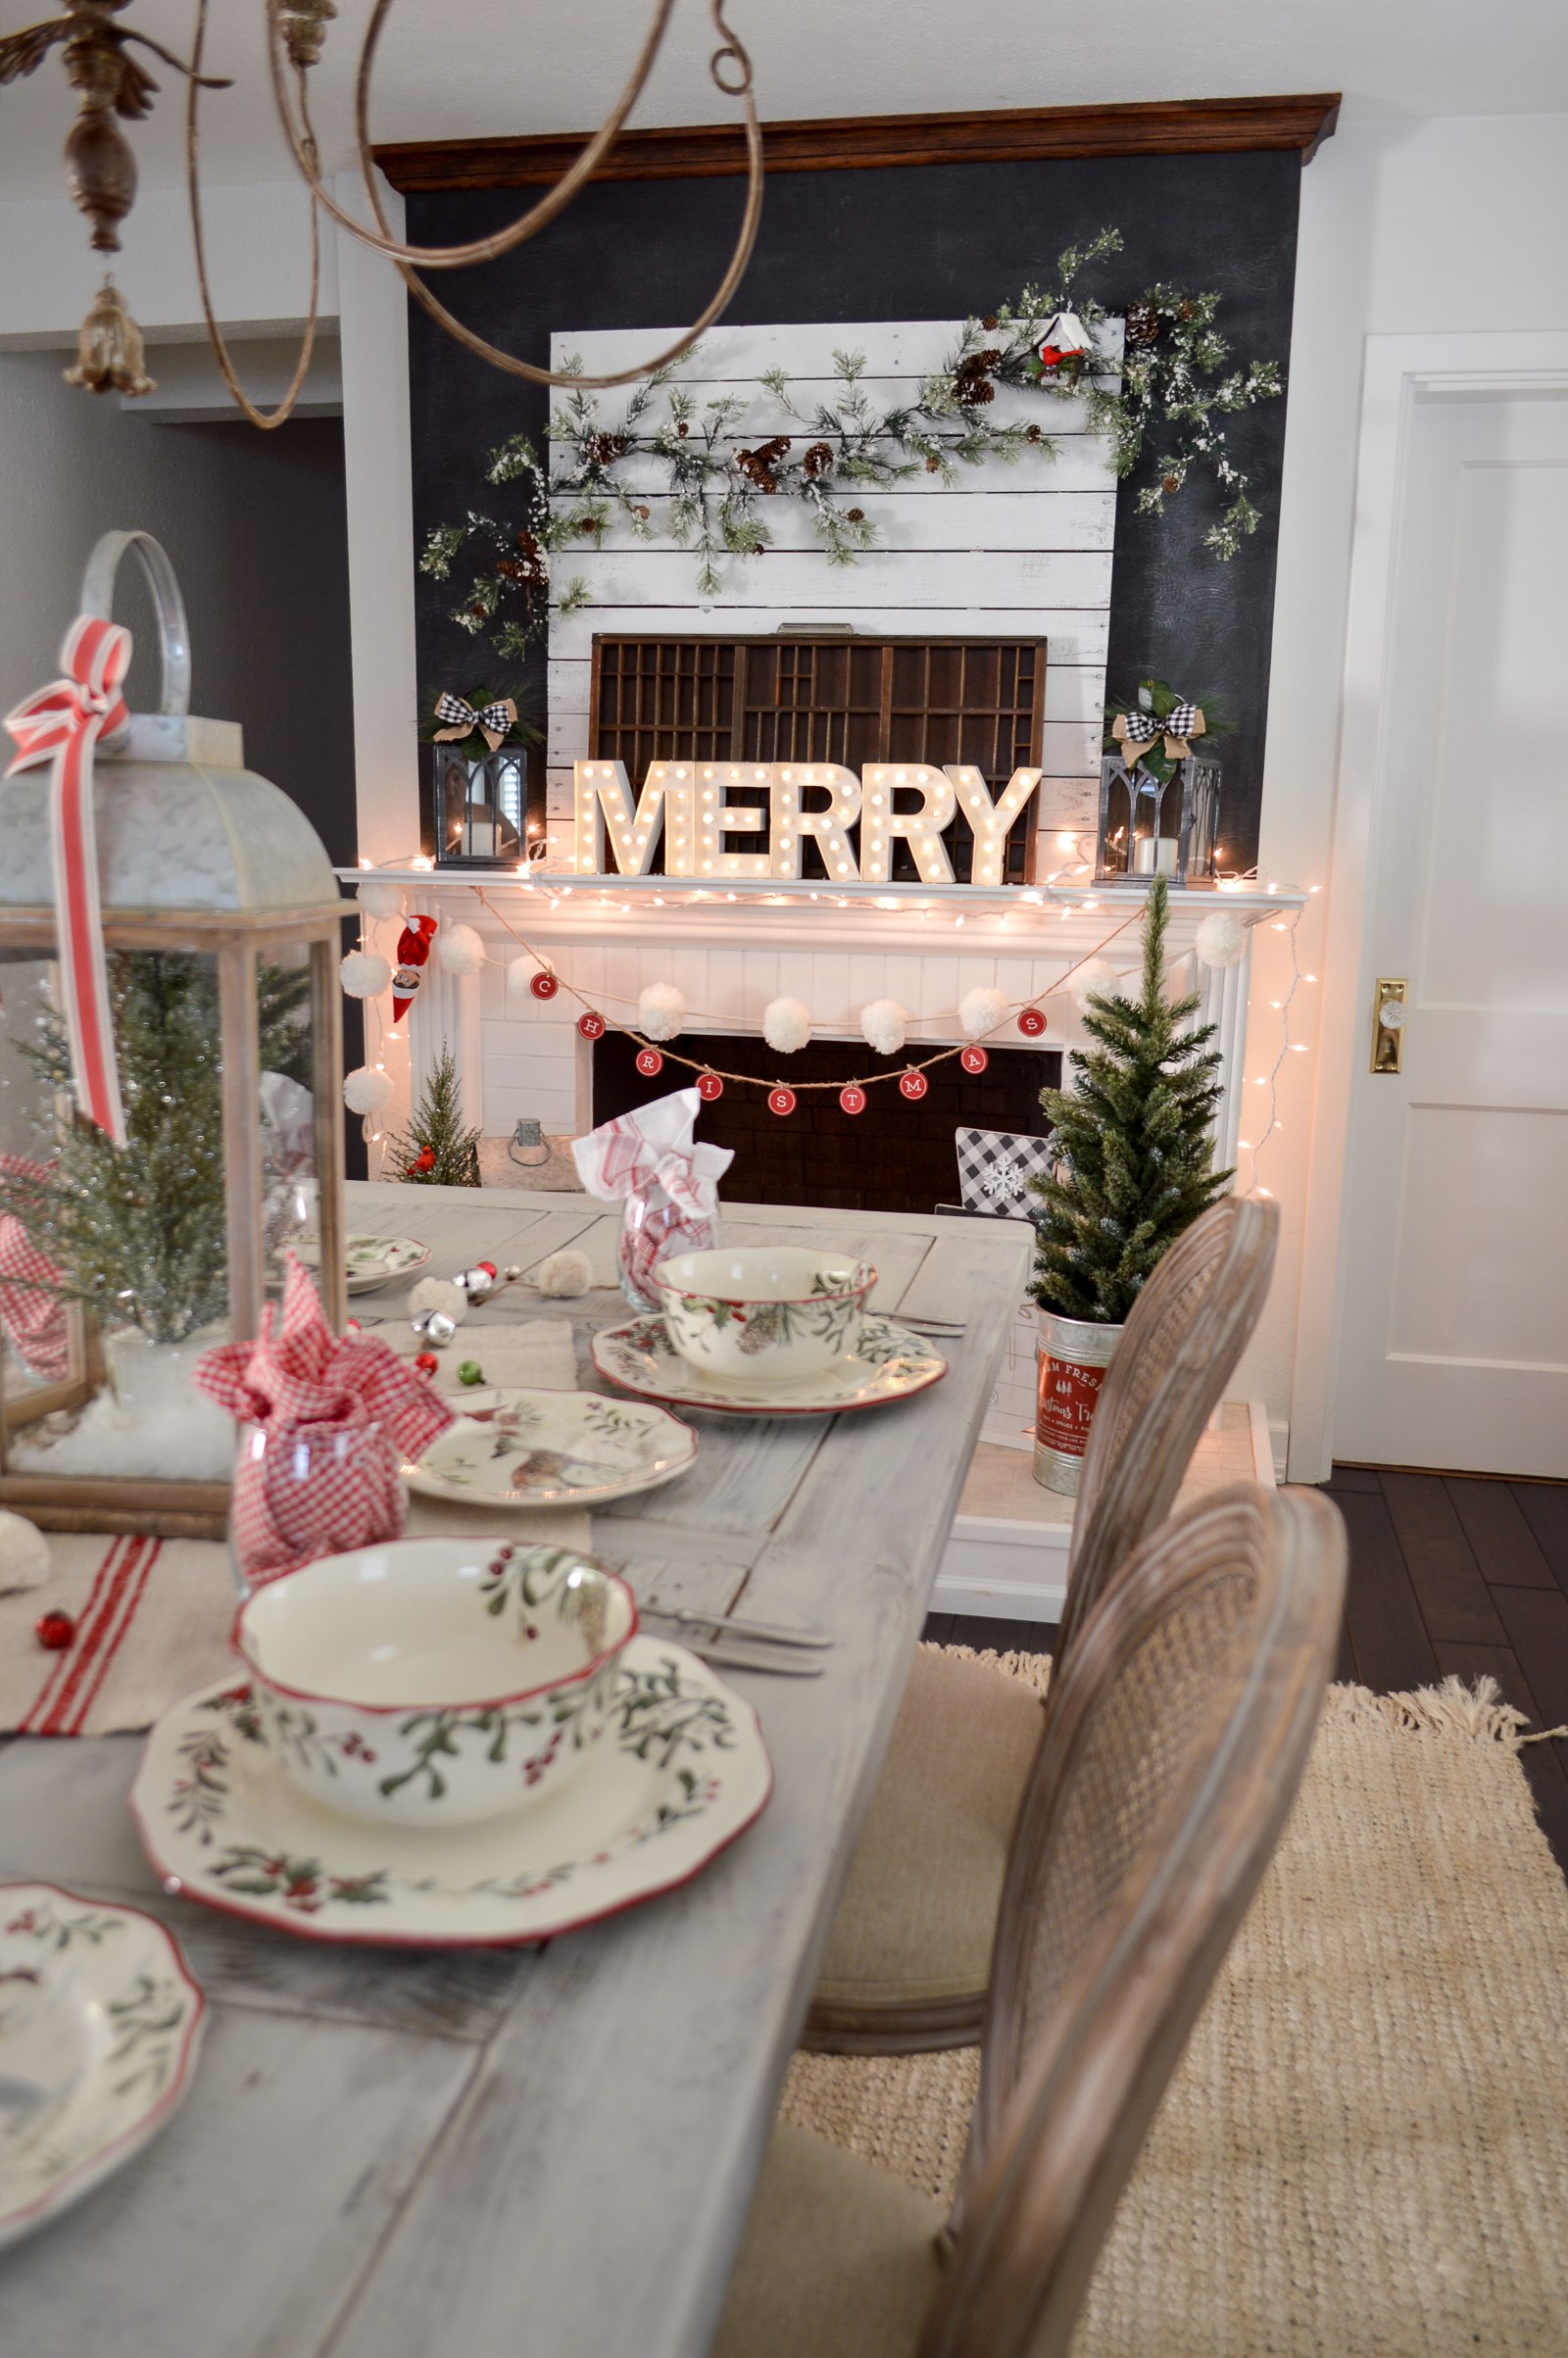 Better Homes And Gardens Christmas Ideas 2019 Festive Traditions Christmas Holiday Table and Fireplace Mantel